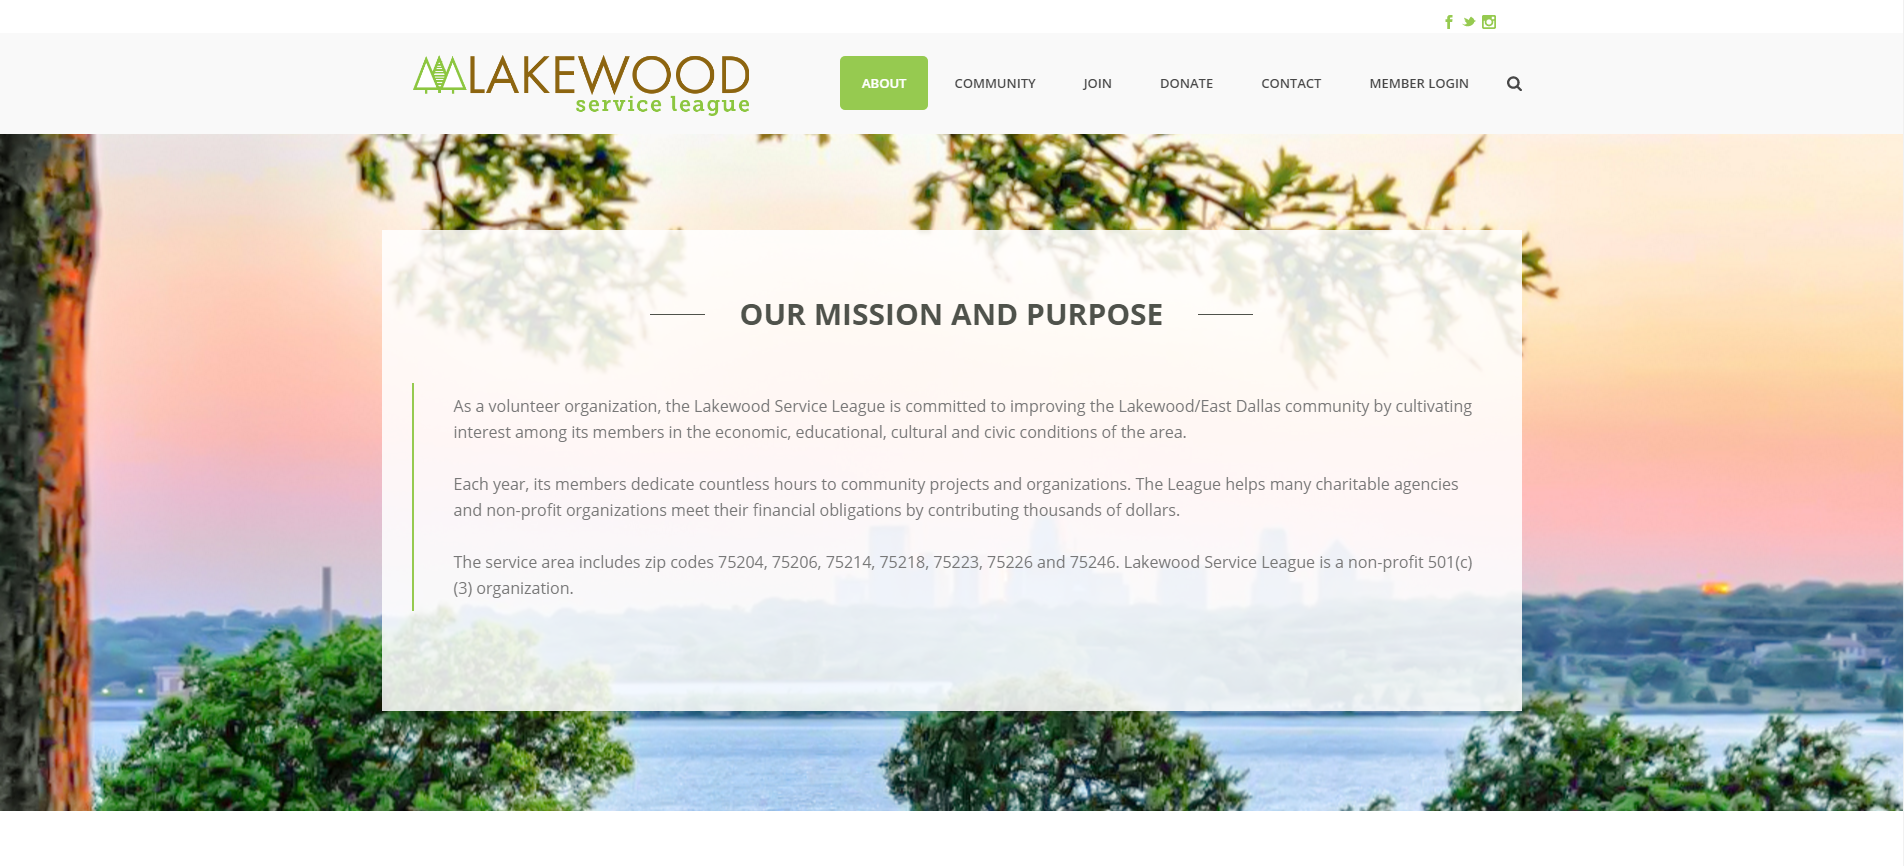 The Lakewood Service League has included a navigation bar at the top of their page. The bar is featured in a contrasting color so that it's easily distinguishable from the rest of the website.